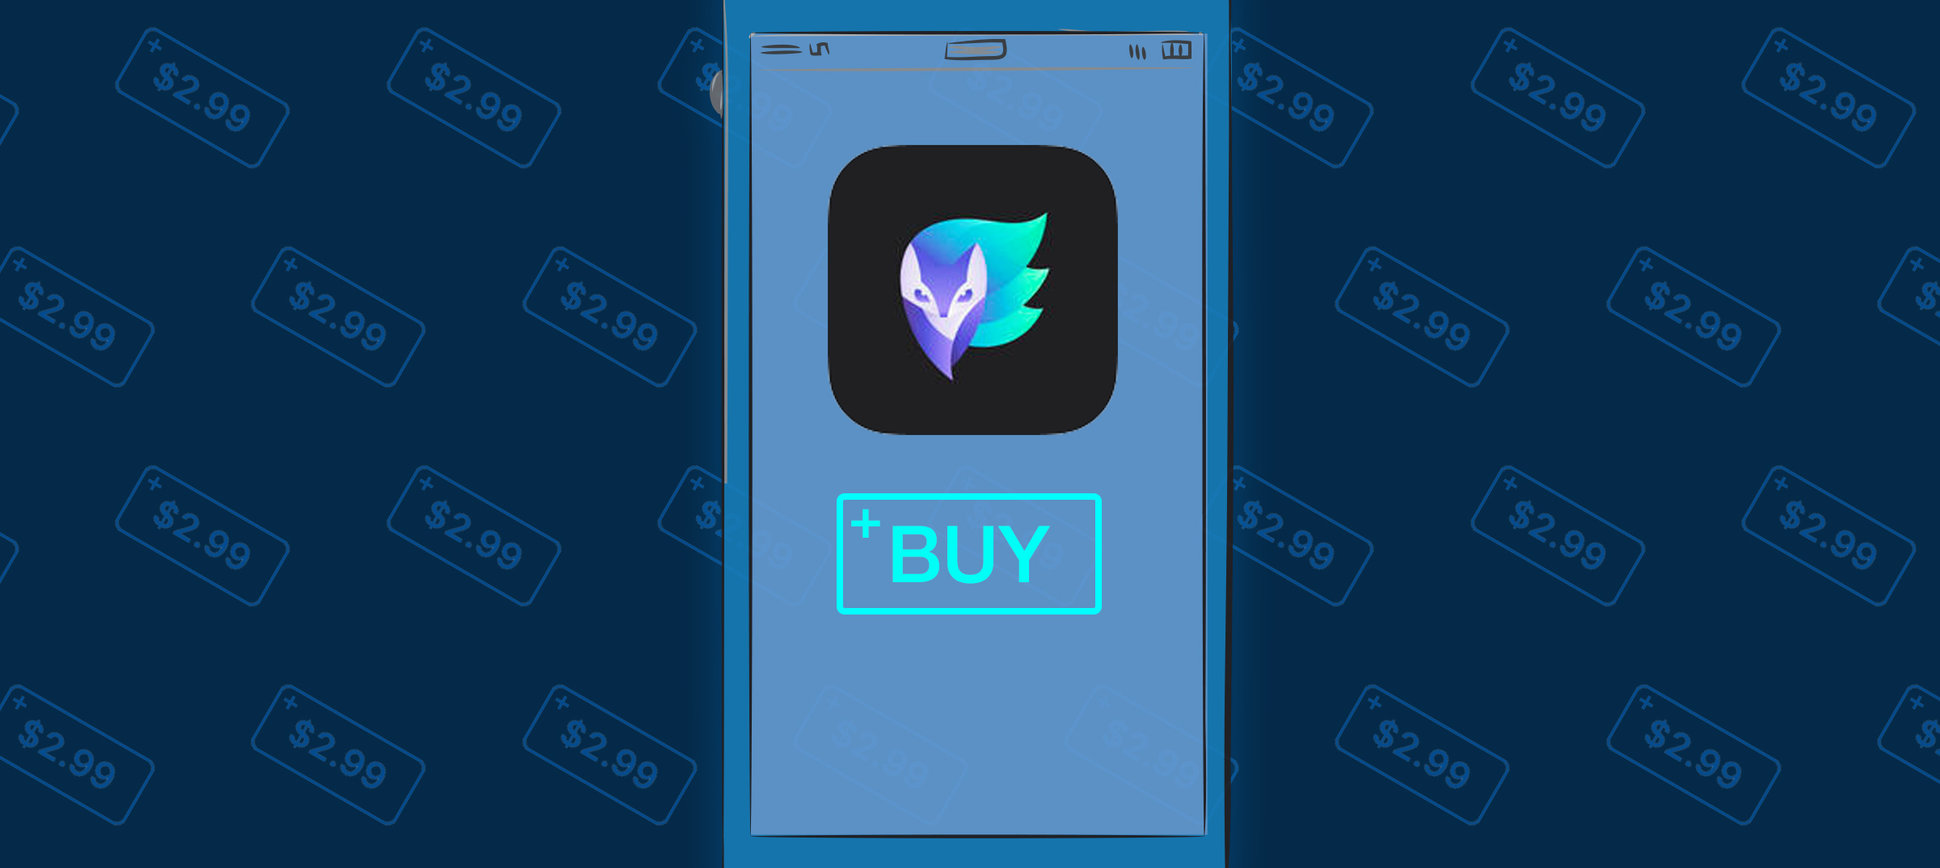 10 Paid iPhone Apps That Are Actually Worth the Money